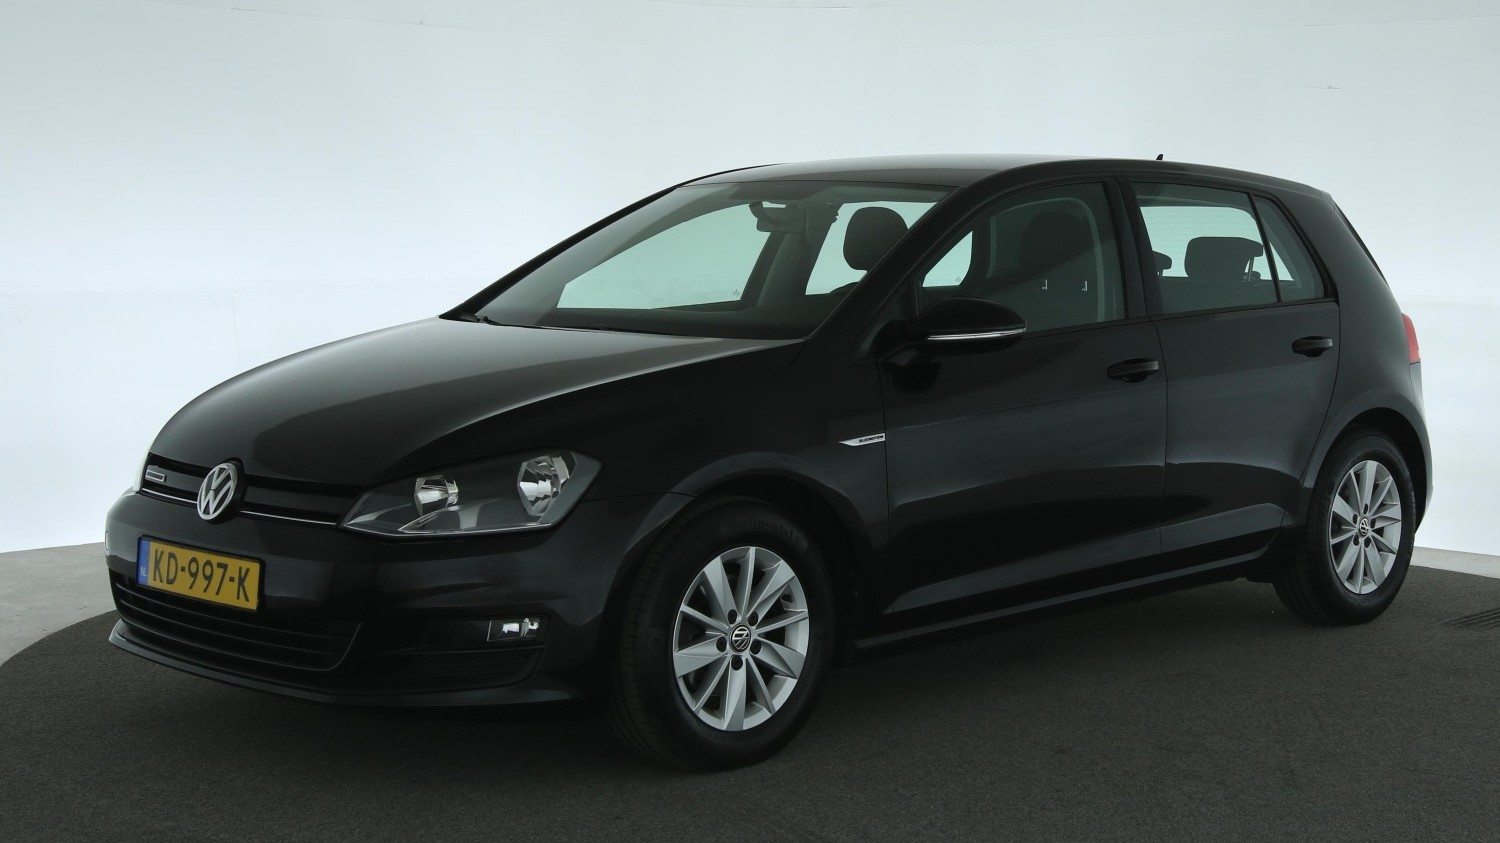 Volkswagen Golf Hatchback 2016 KD-997-K 1